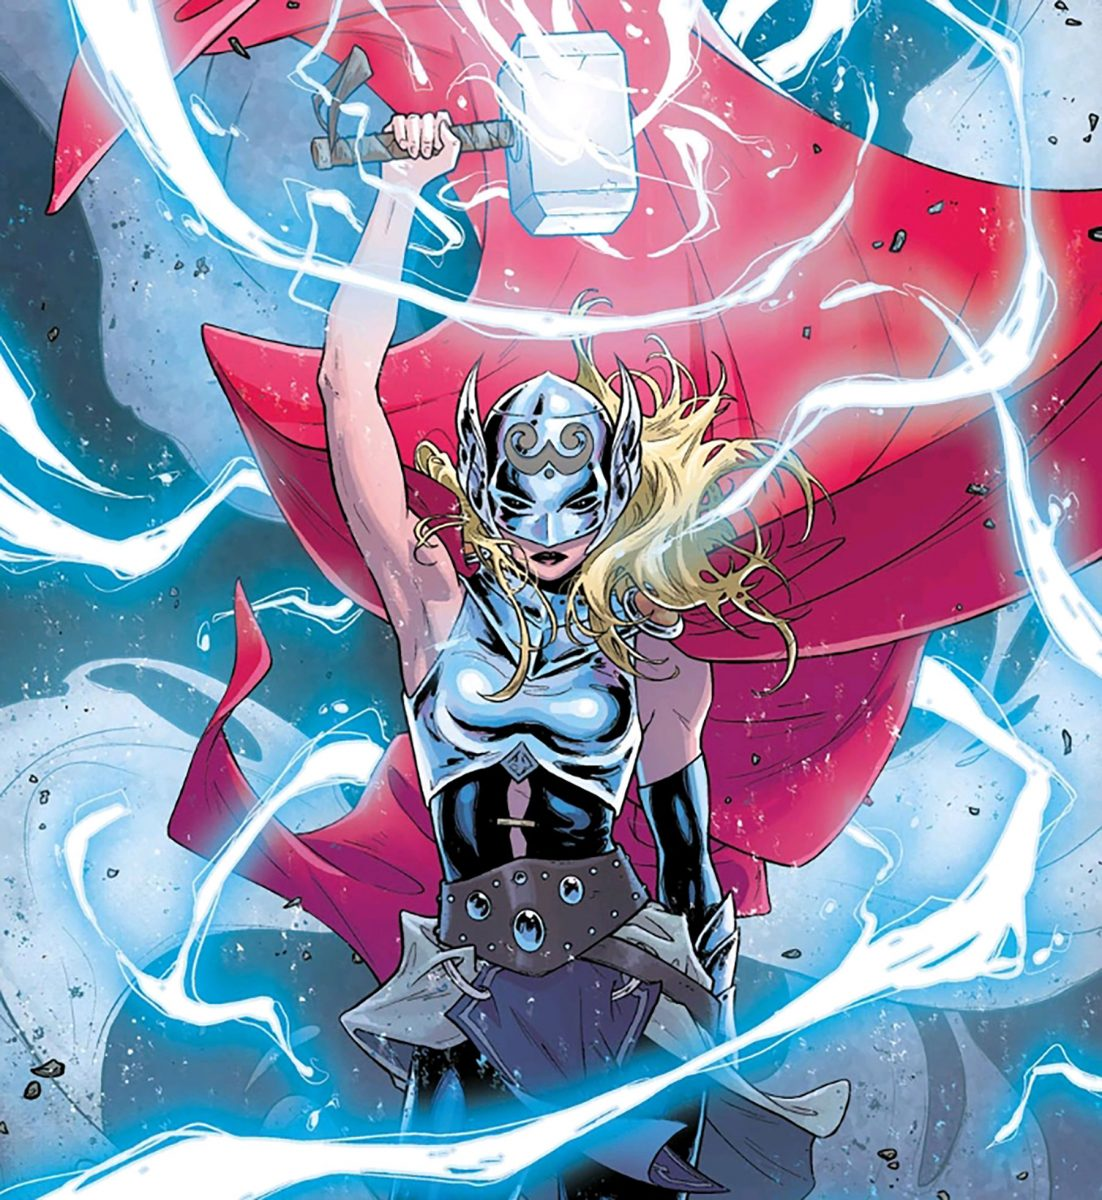 jane foster takes on the thor mantle